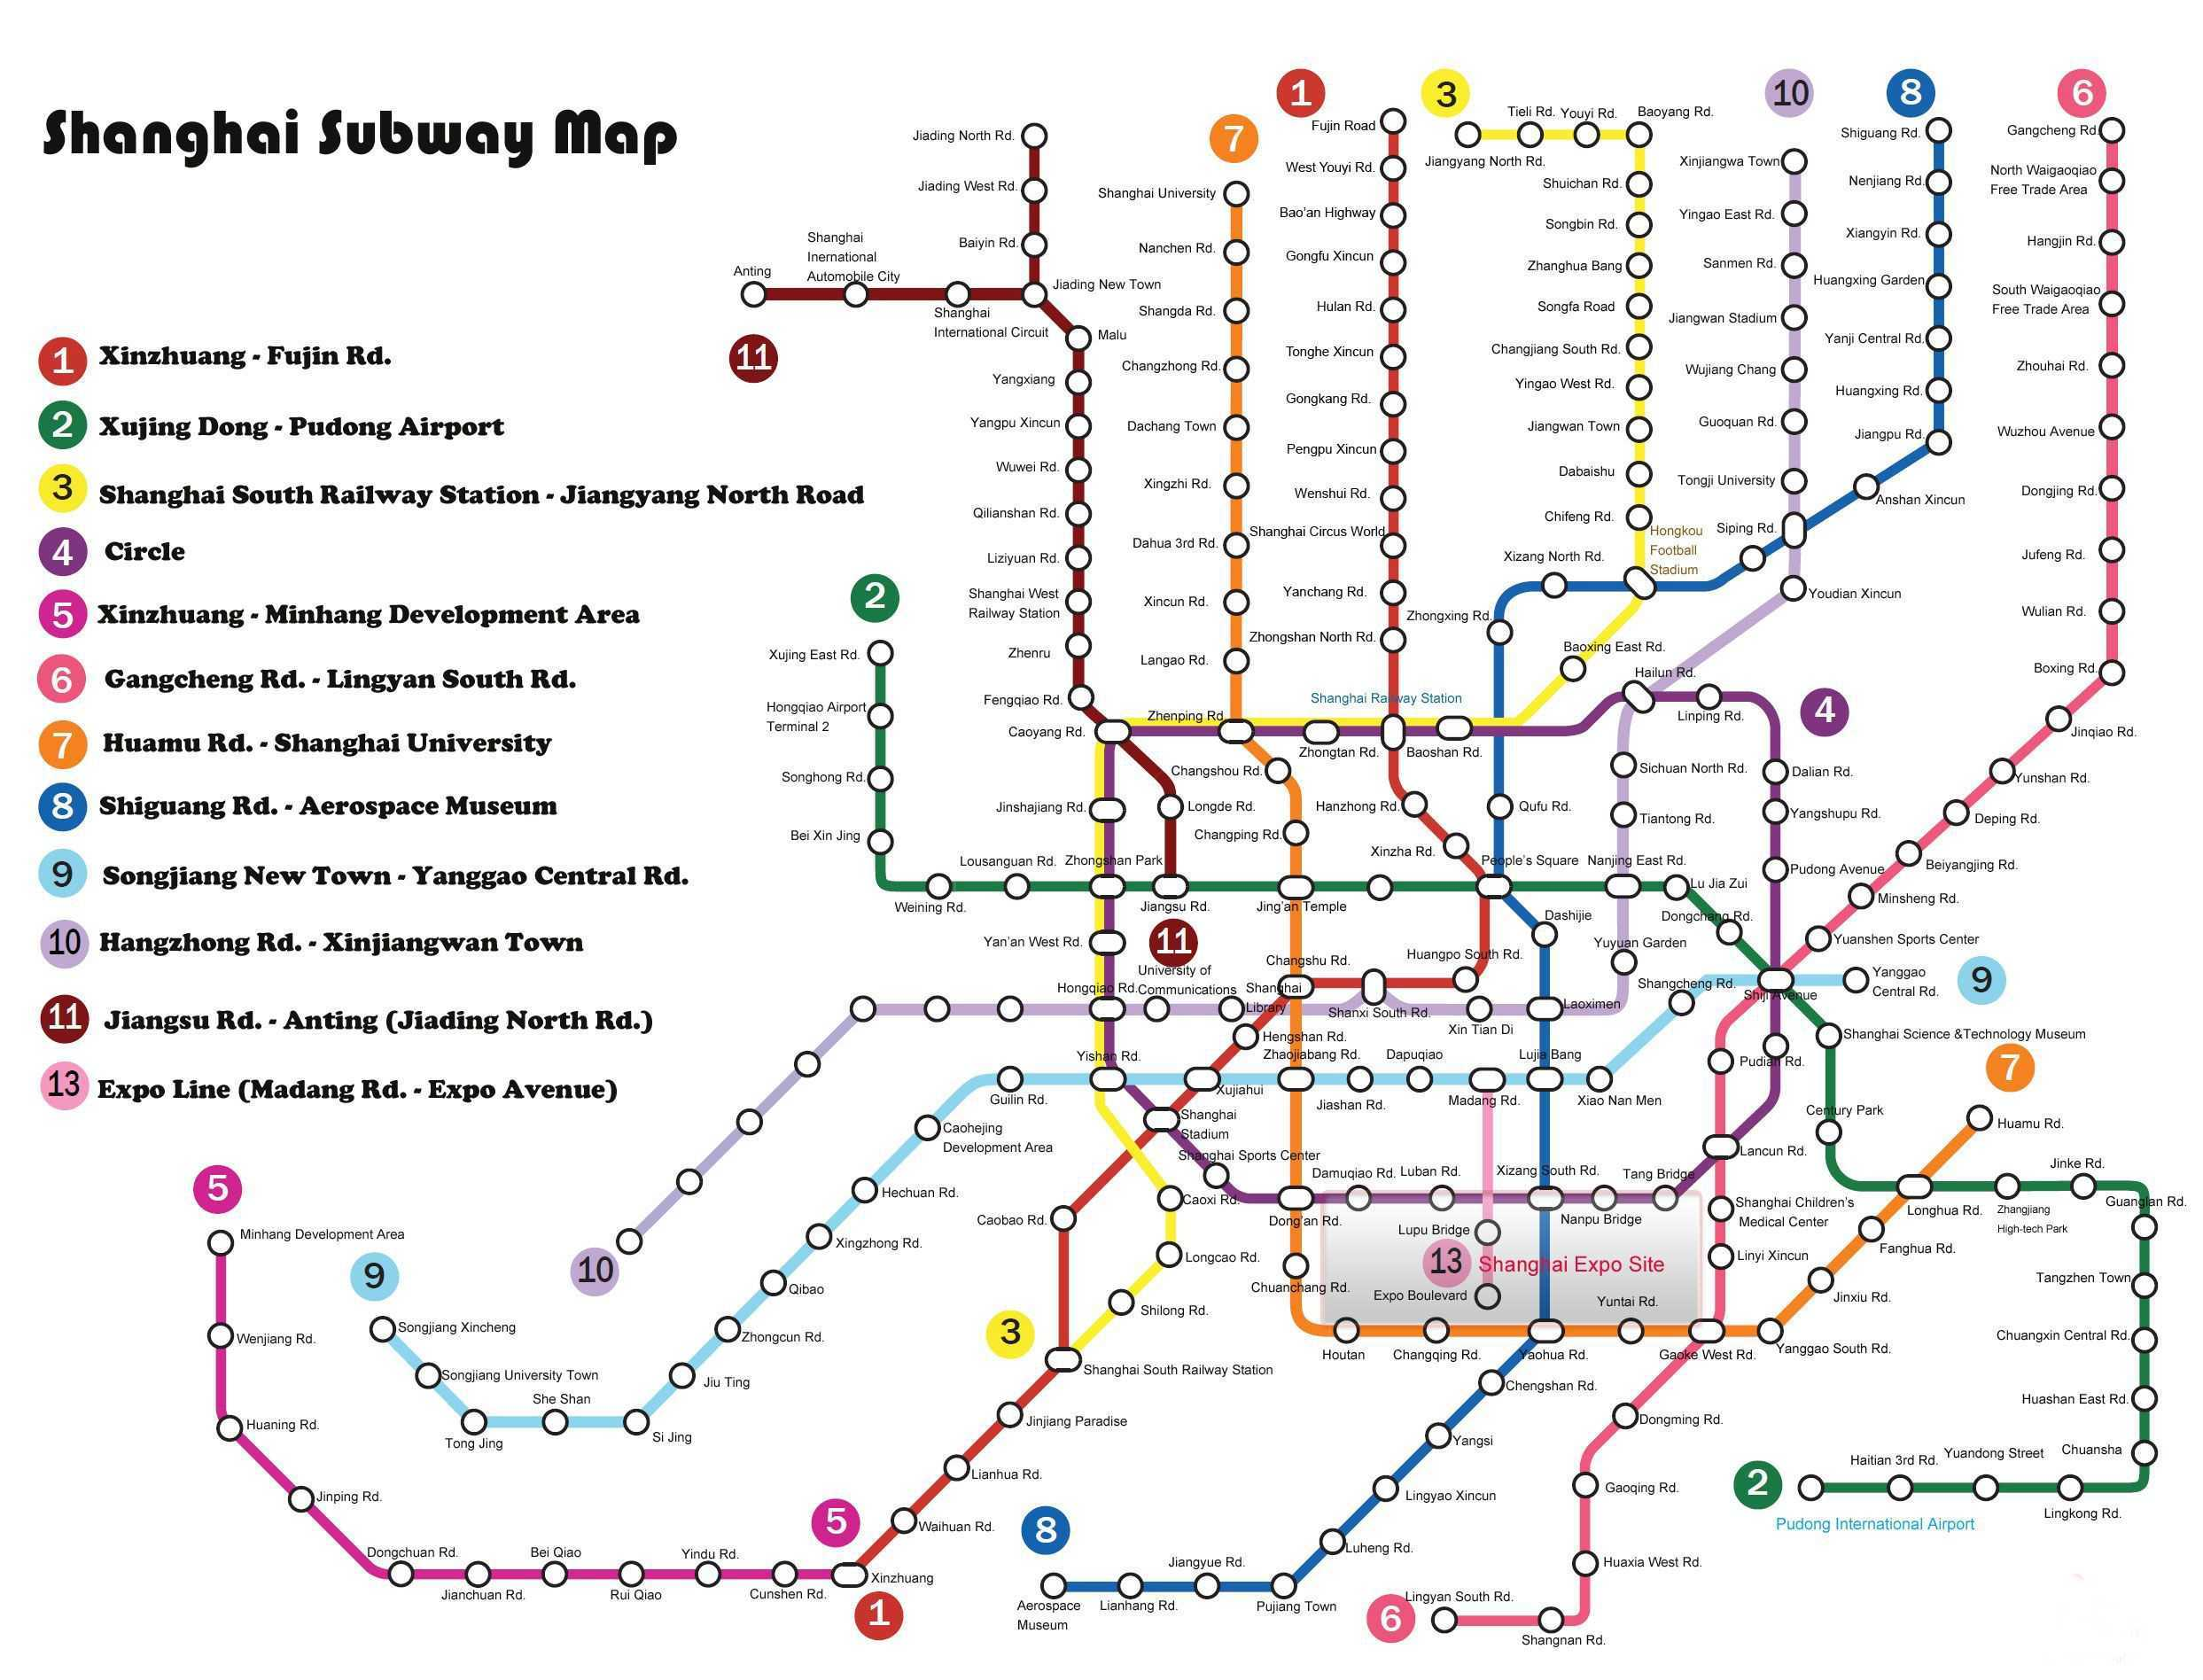 China Subway Maps, Beijing Subway Map, Shanghai Subway Map